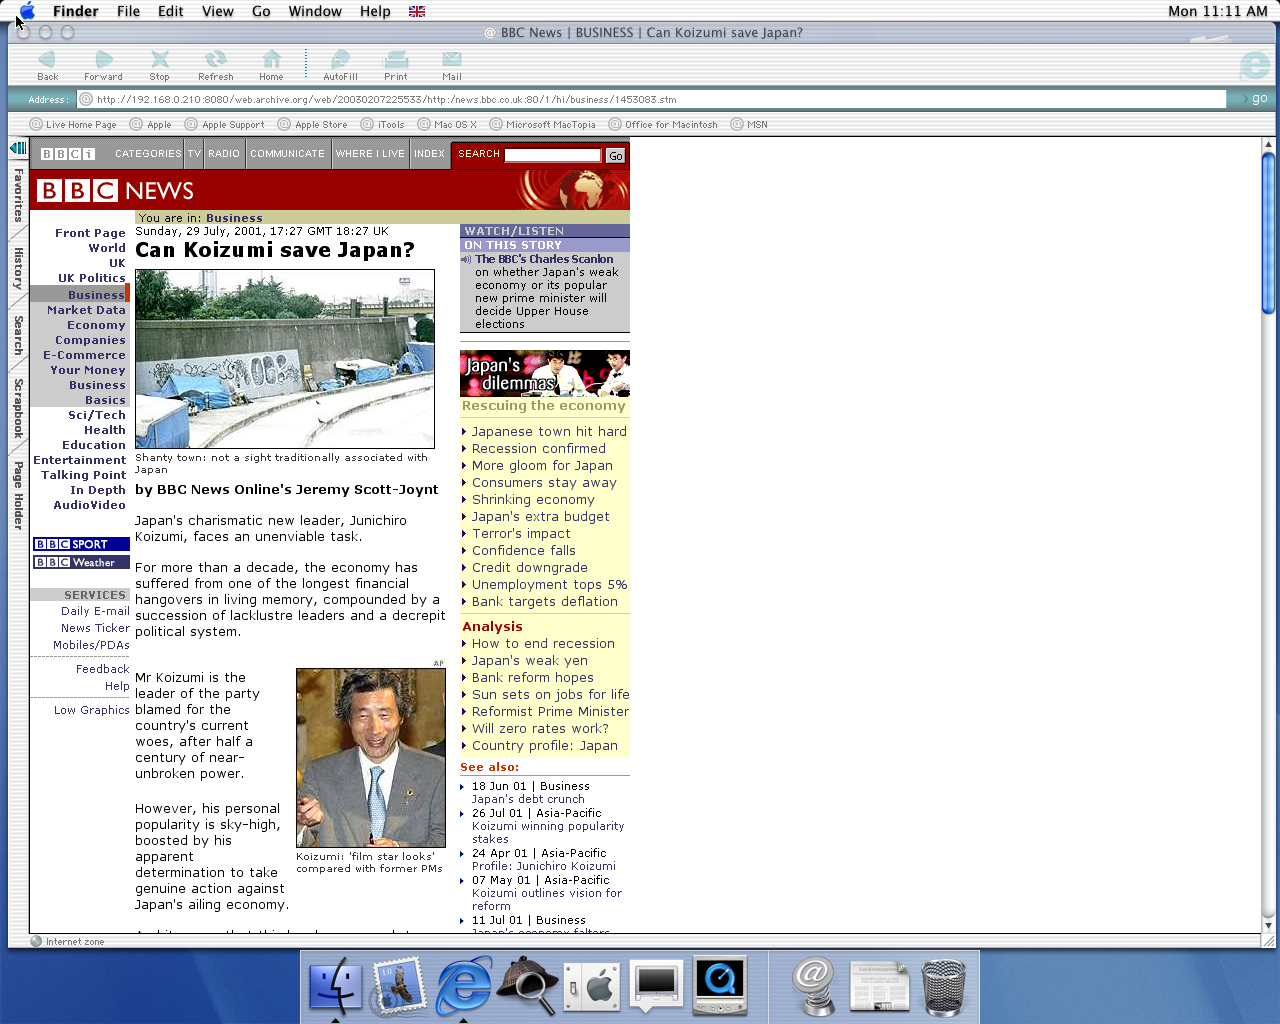 OS X 10.0 PPC with Microsoft Internet Explorer 5.1 for Mac Preview displaying a page from BBC News archived at February 07, 2003 at 22:55:33